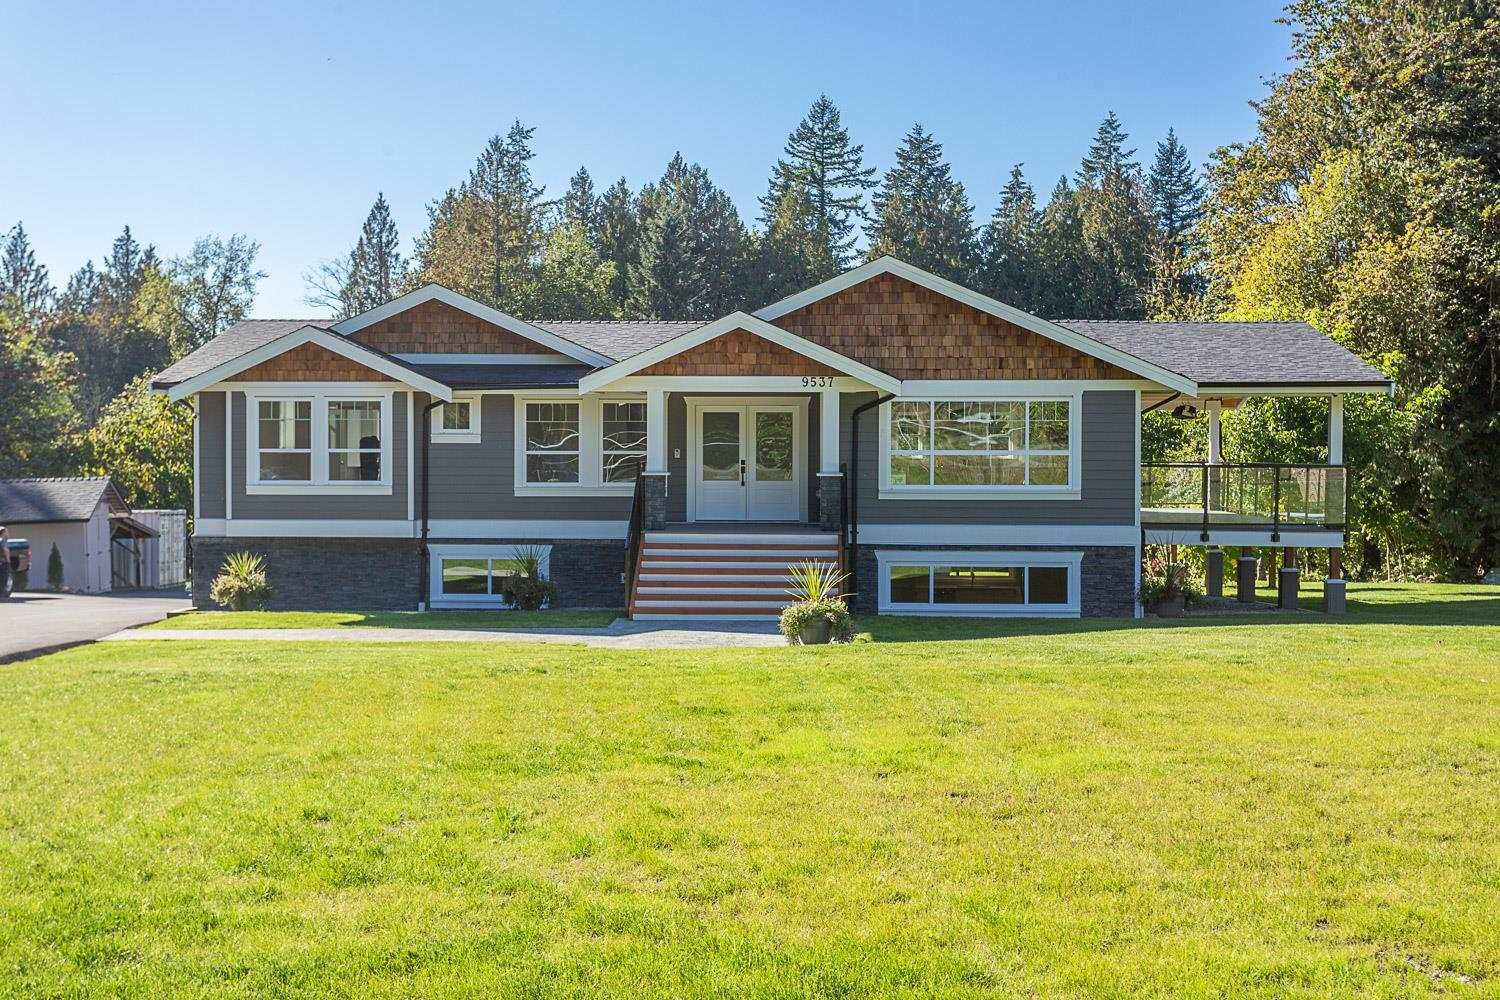 Main Photo: 9537 MANZER Street in Mission: Mission BC House for sale : MLS®# R2595692